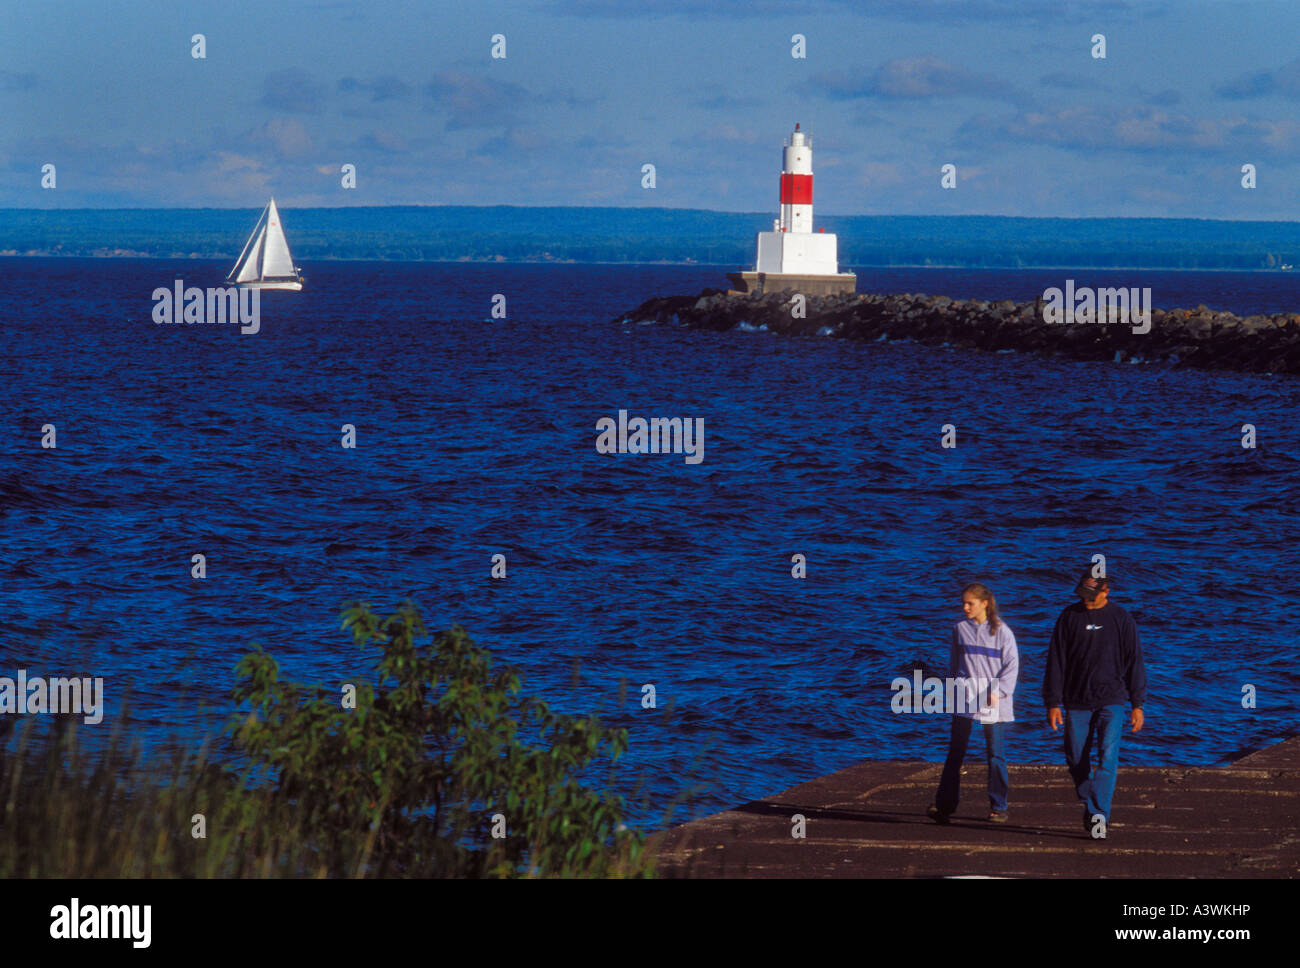 A sailboat passes the Upper Harbor breakwater light as tourists stroll the breakwater in Marquette Mich - Stock Image